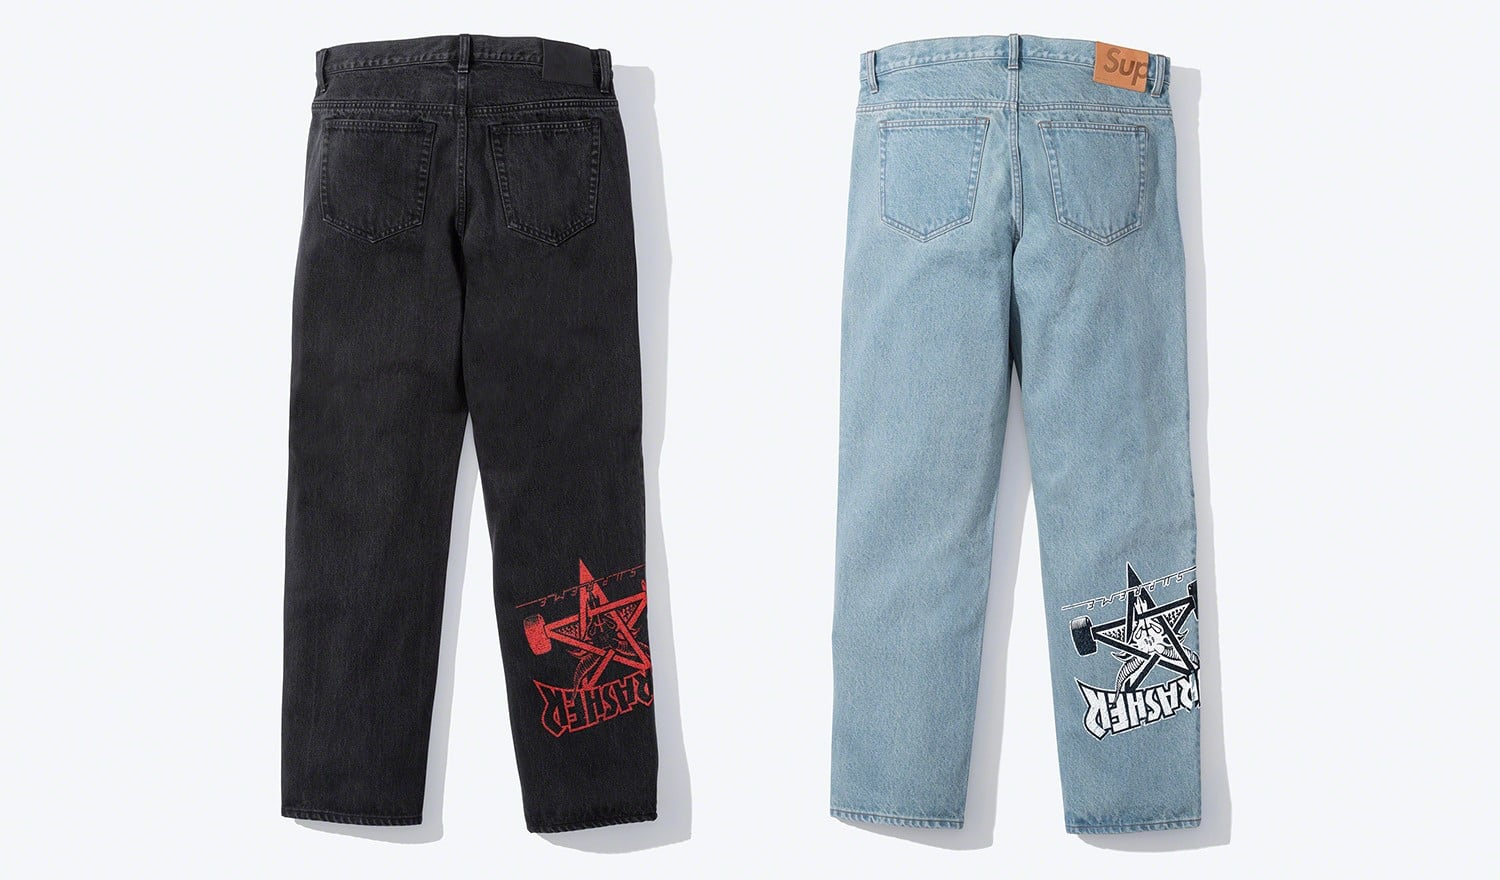 Supreme and Thrasher reunite for a cool clothing collection 20